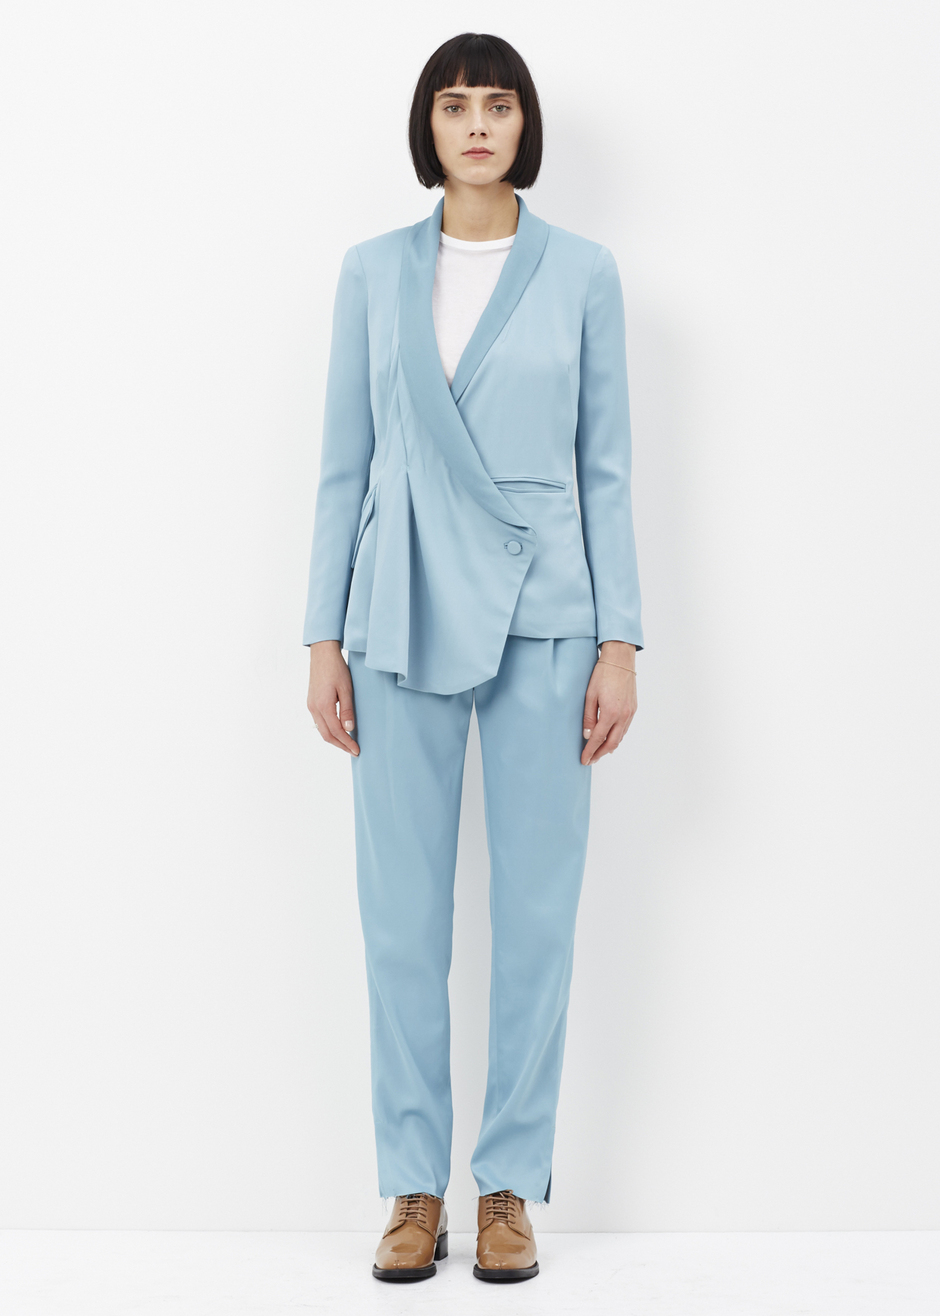 Fashion Trend: 2017 Is the Year of the Pantsuit - theFashionSpot